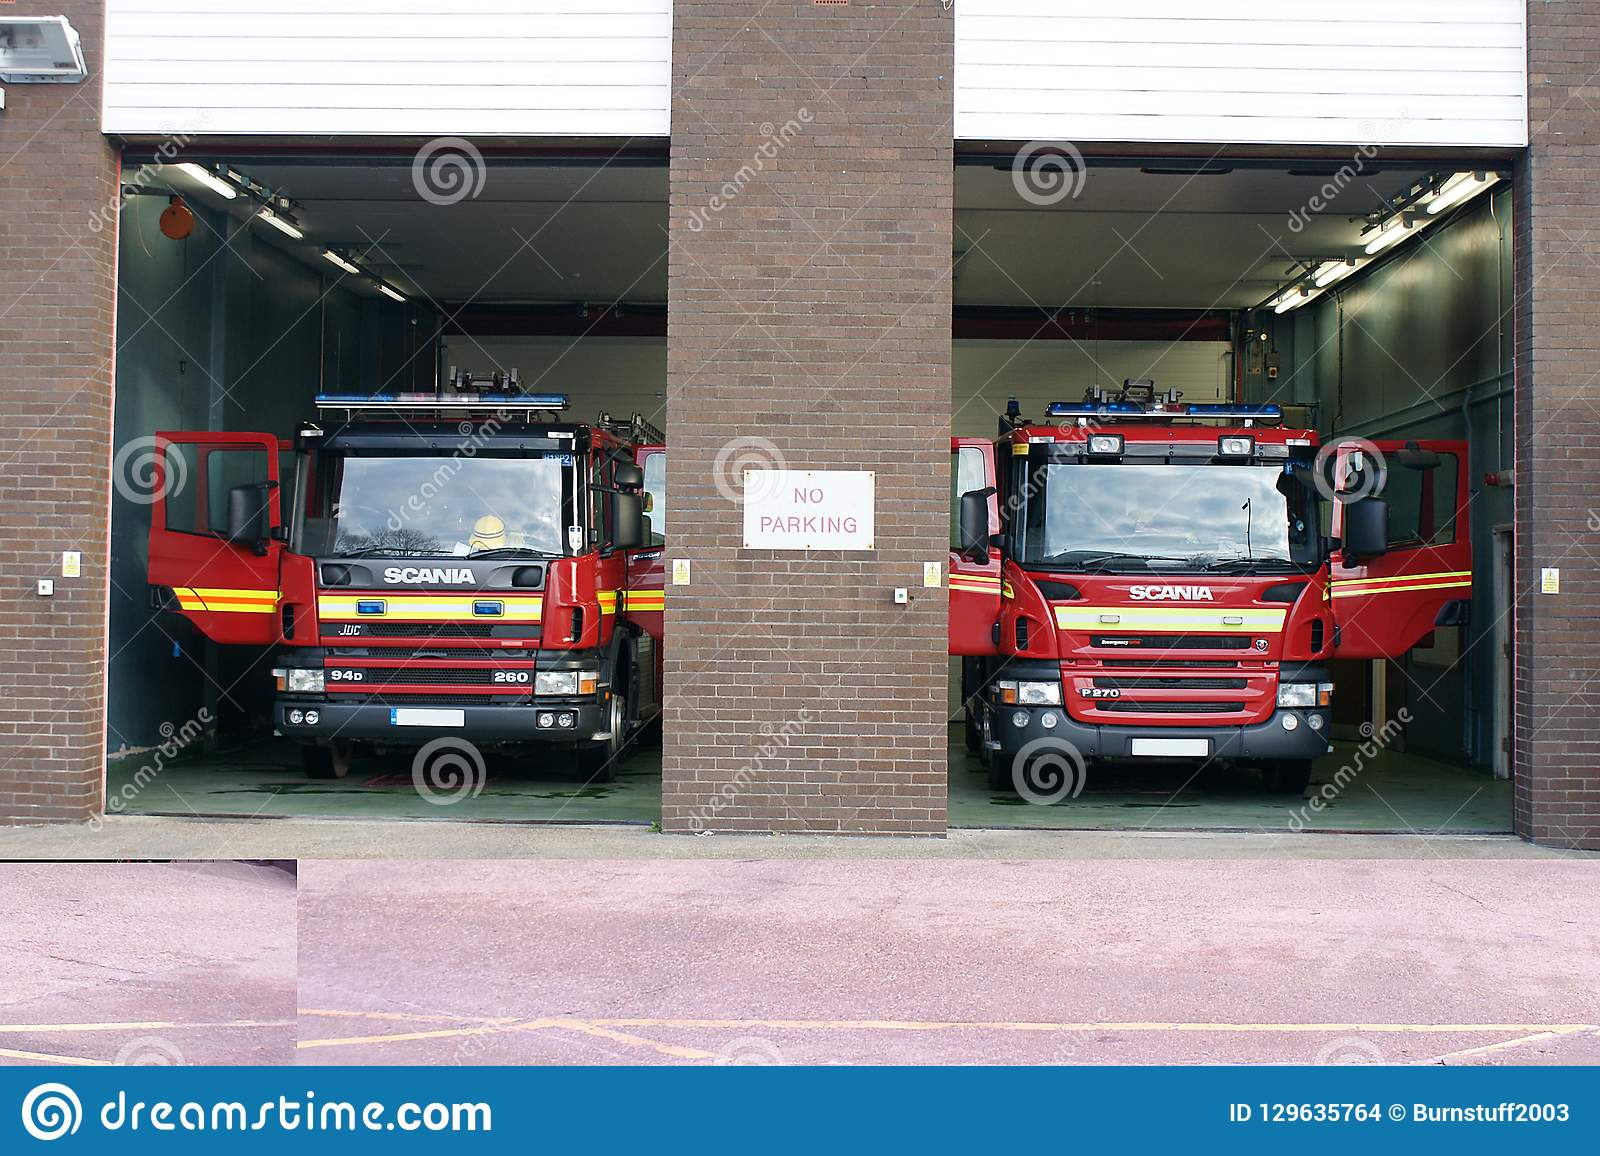 Fire engine in fire station